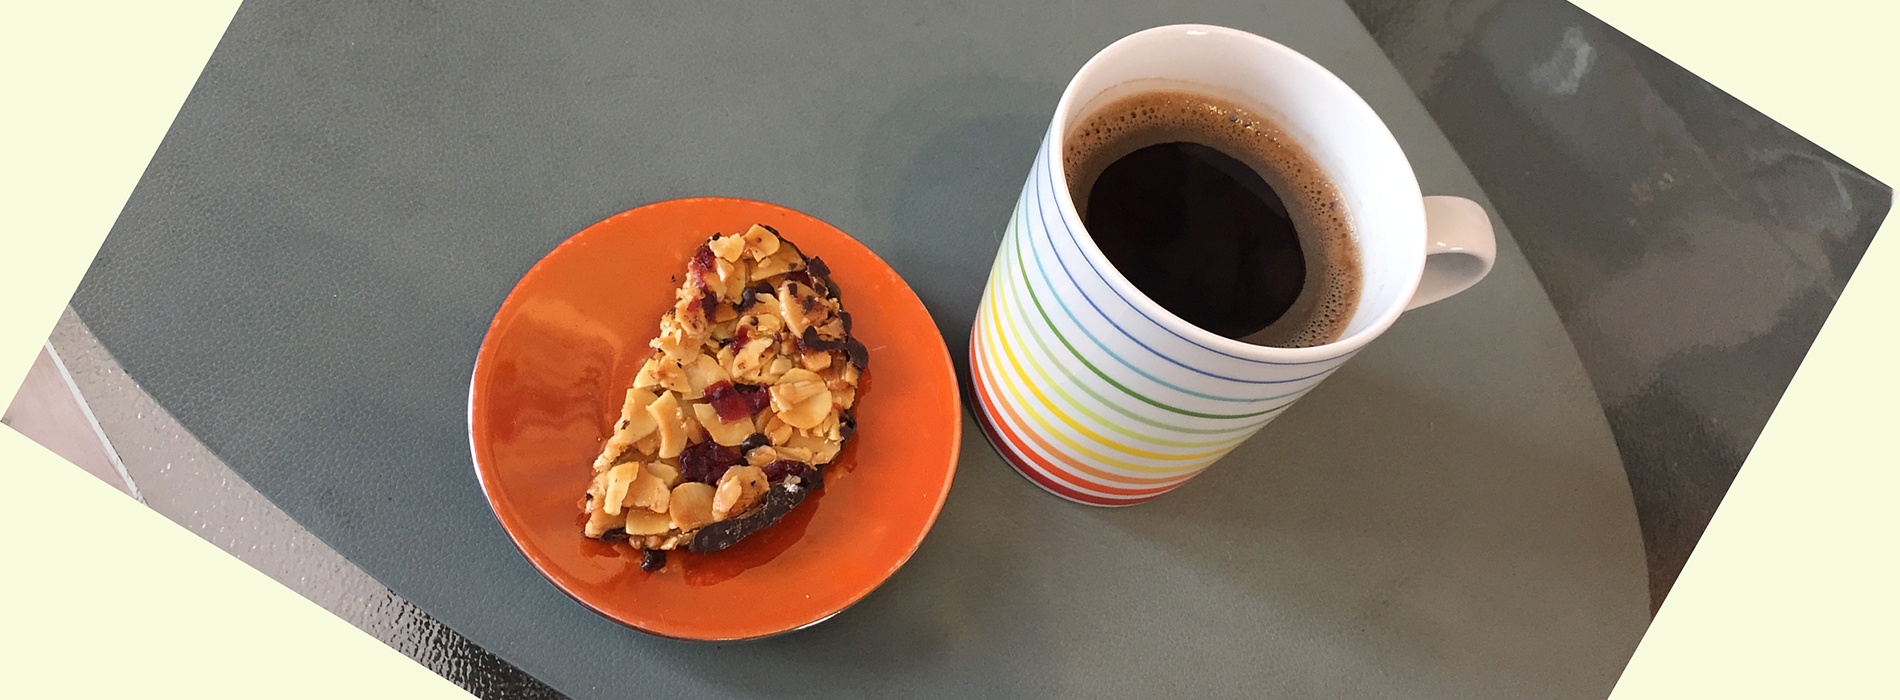 Smart snacking. Half a florentine and a cup of black coffee or tea.